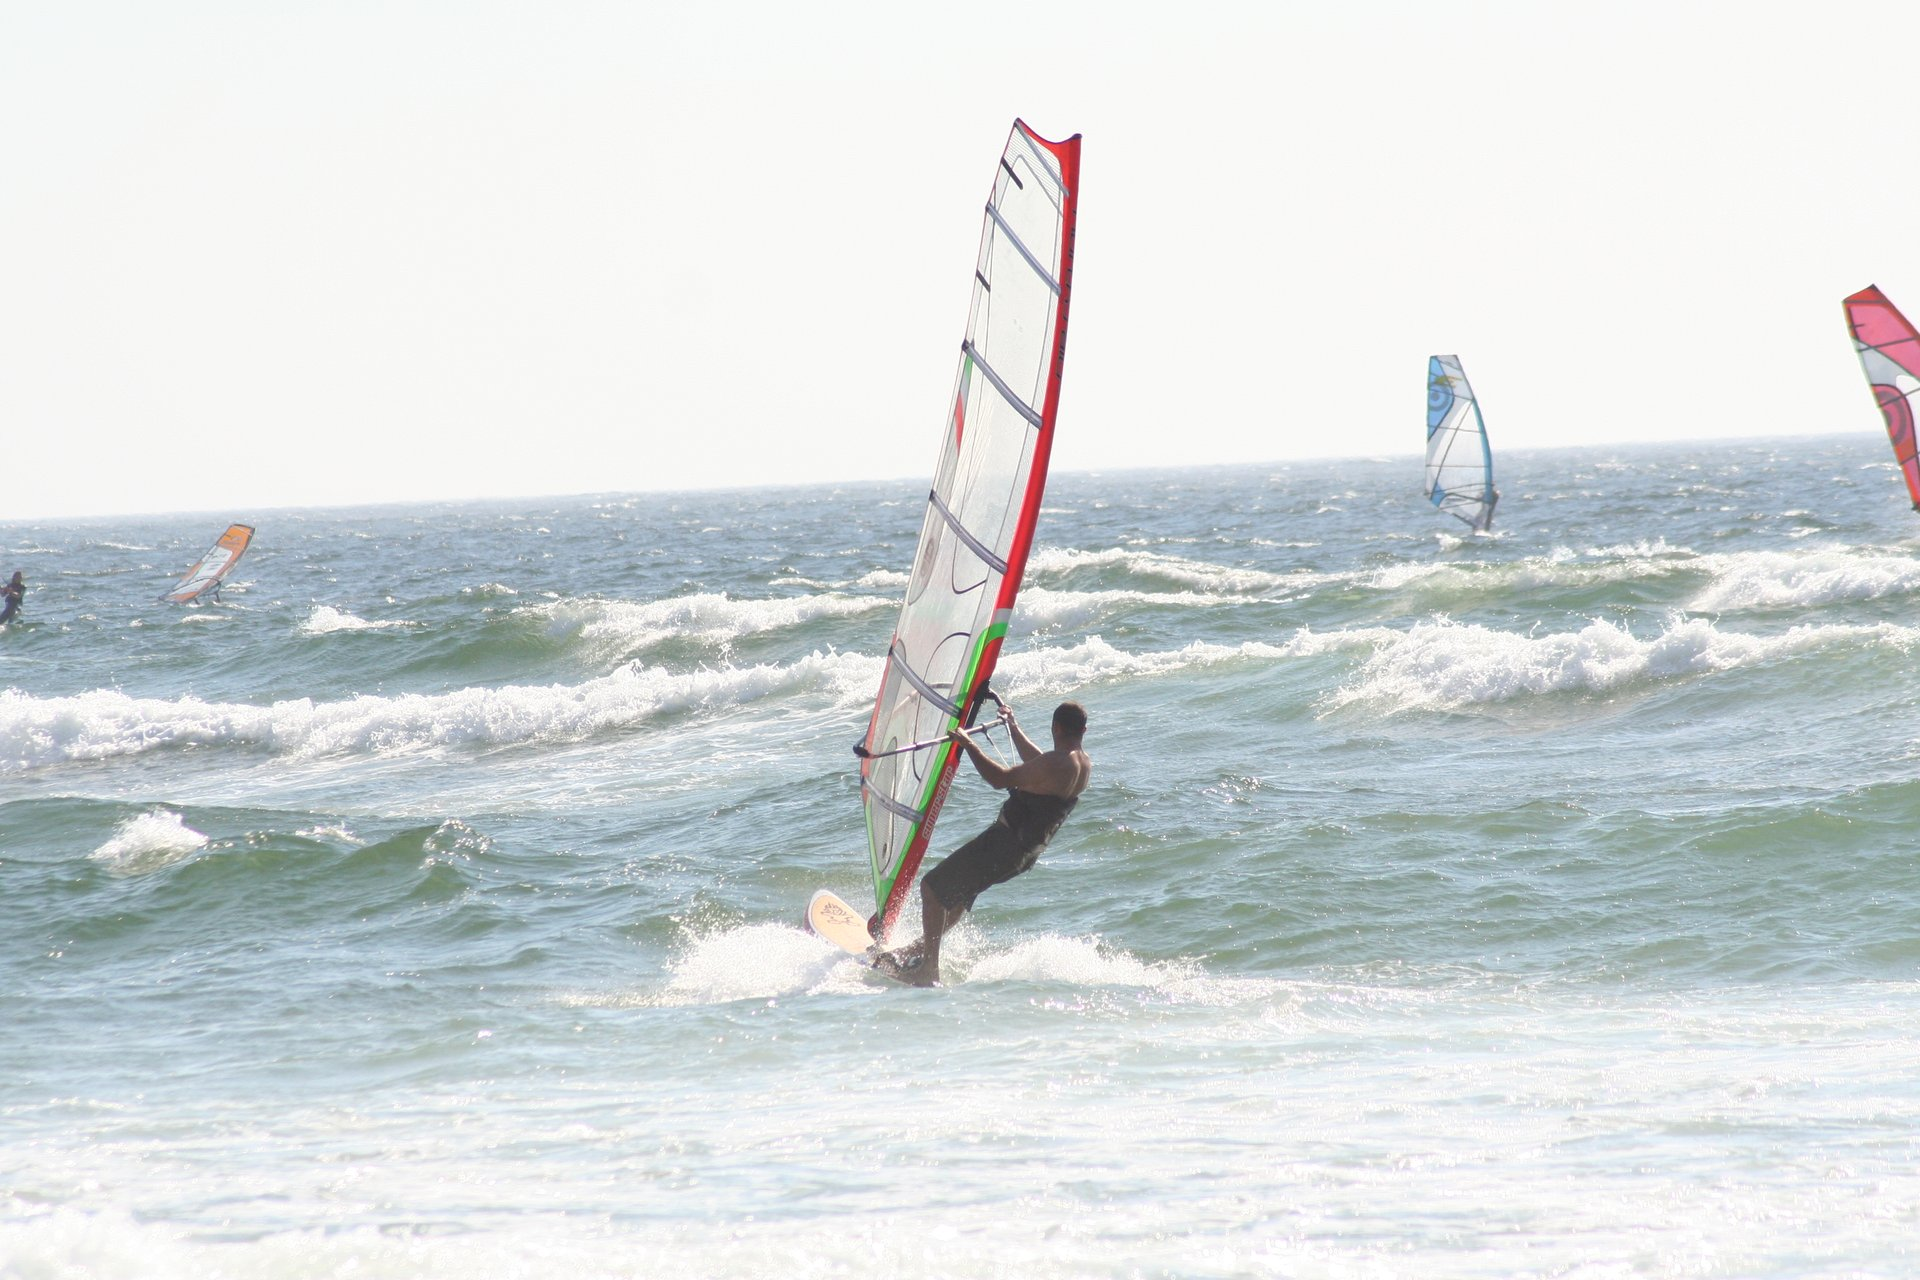 Windsurfers off the coast in Guincho, Portugal 2020